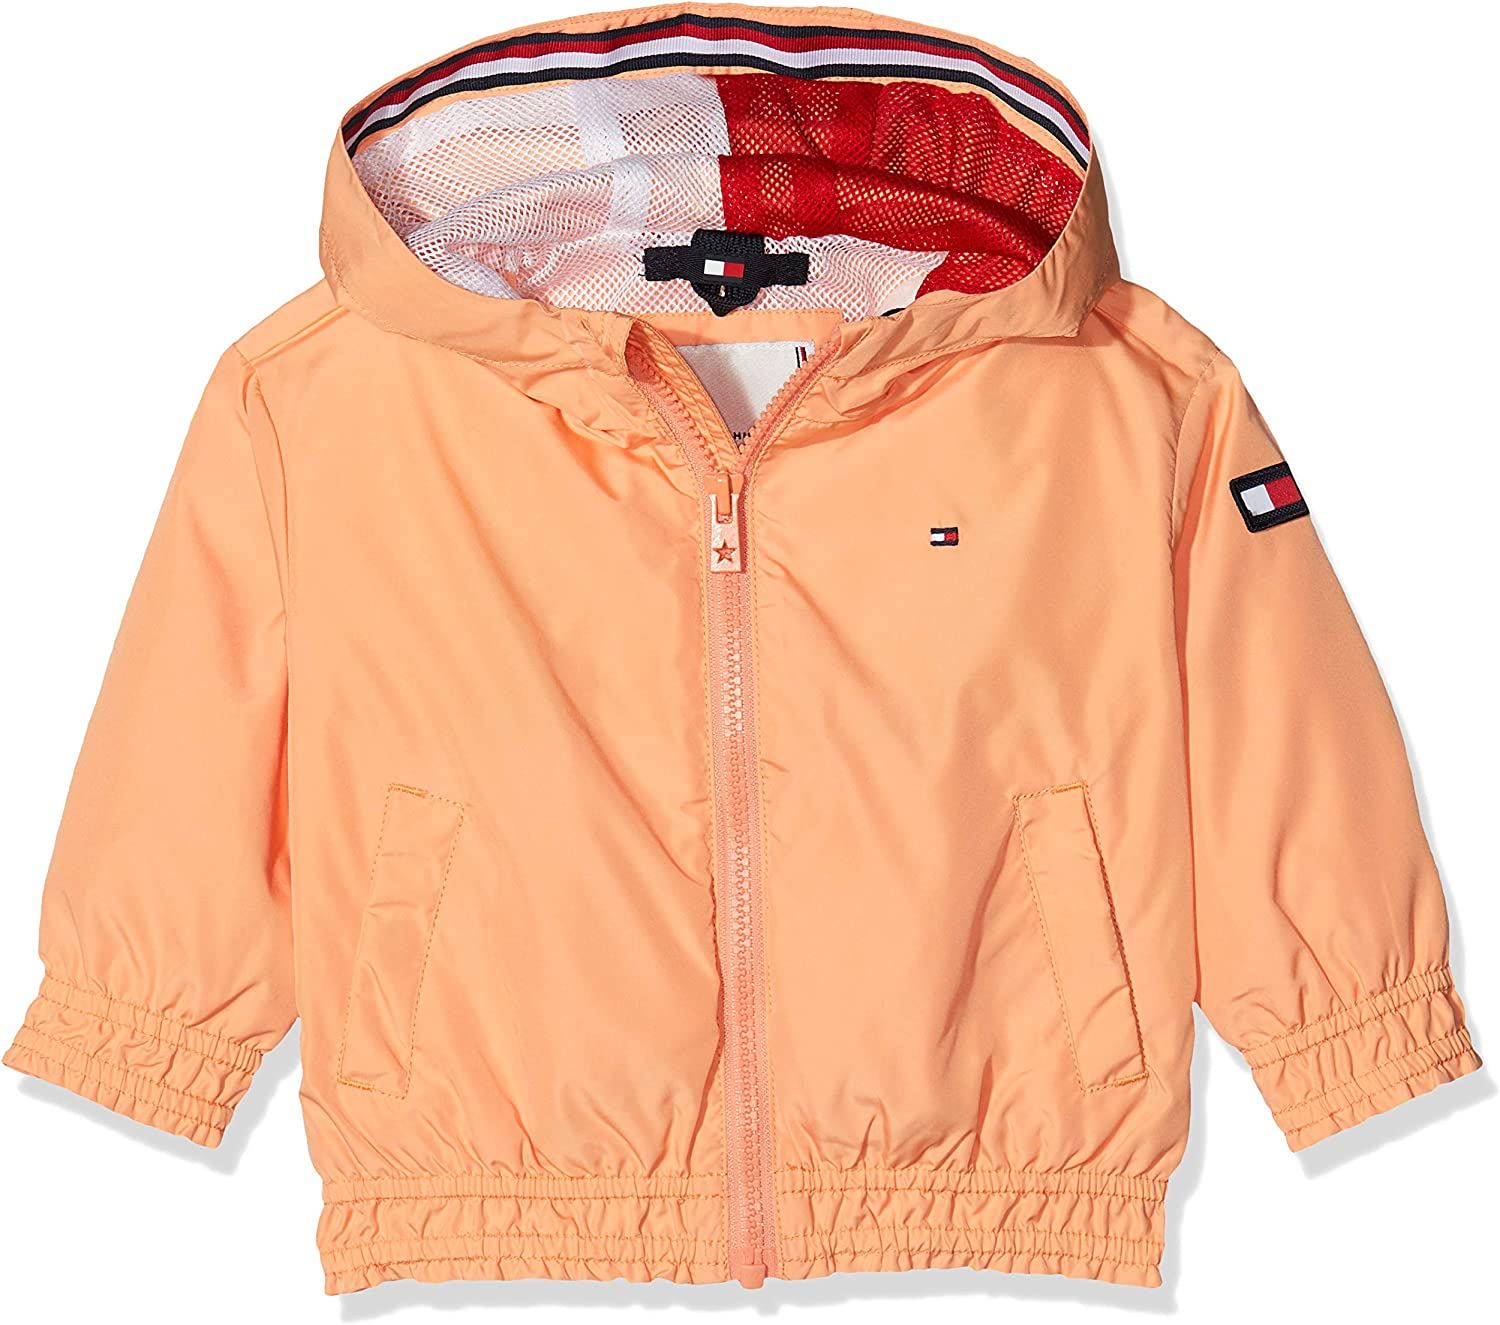 Tommy Hilfiger Essential Light Weight Jacket Giacca Bimba